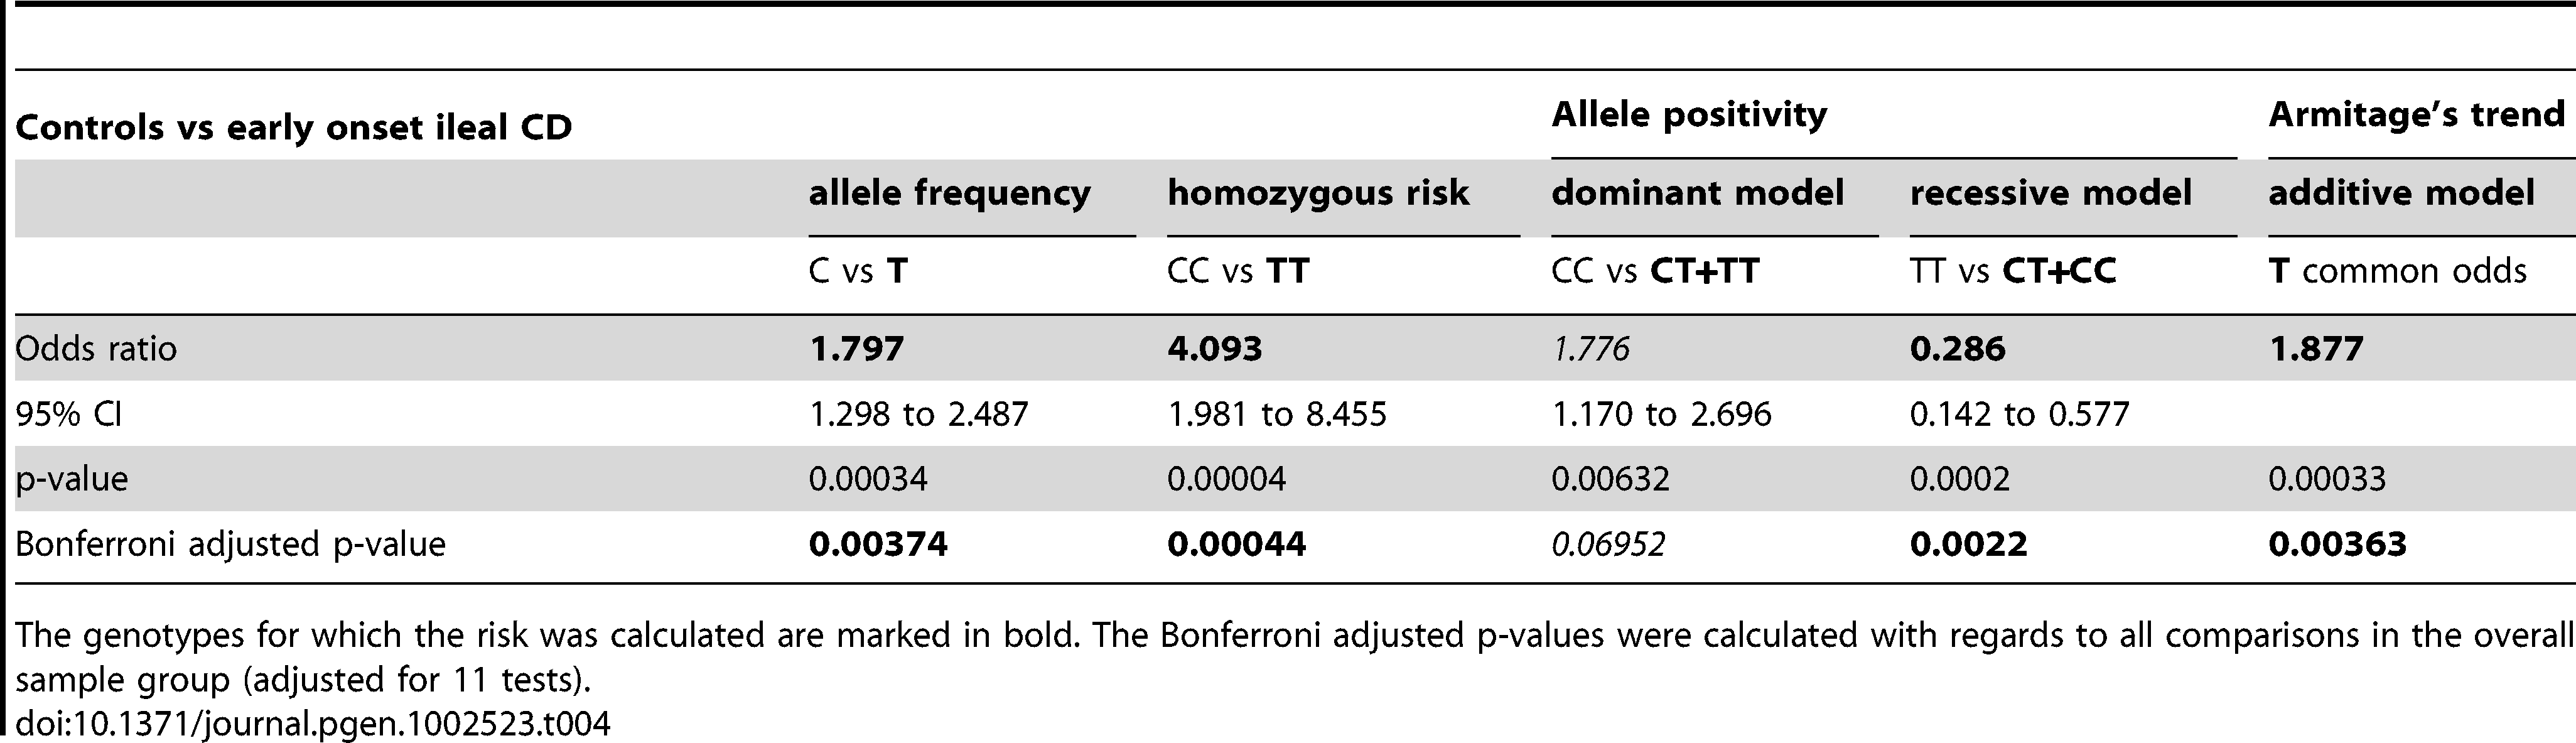 Overall statistical analysis in controls versus early onset ileal CD.